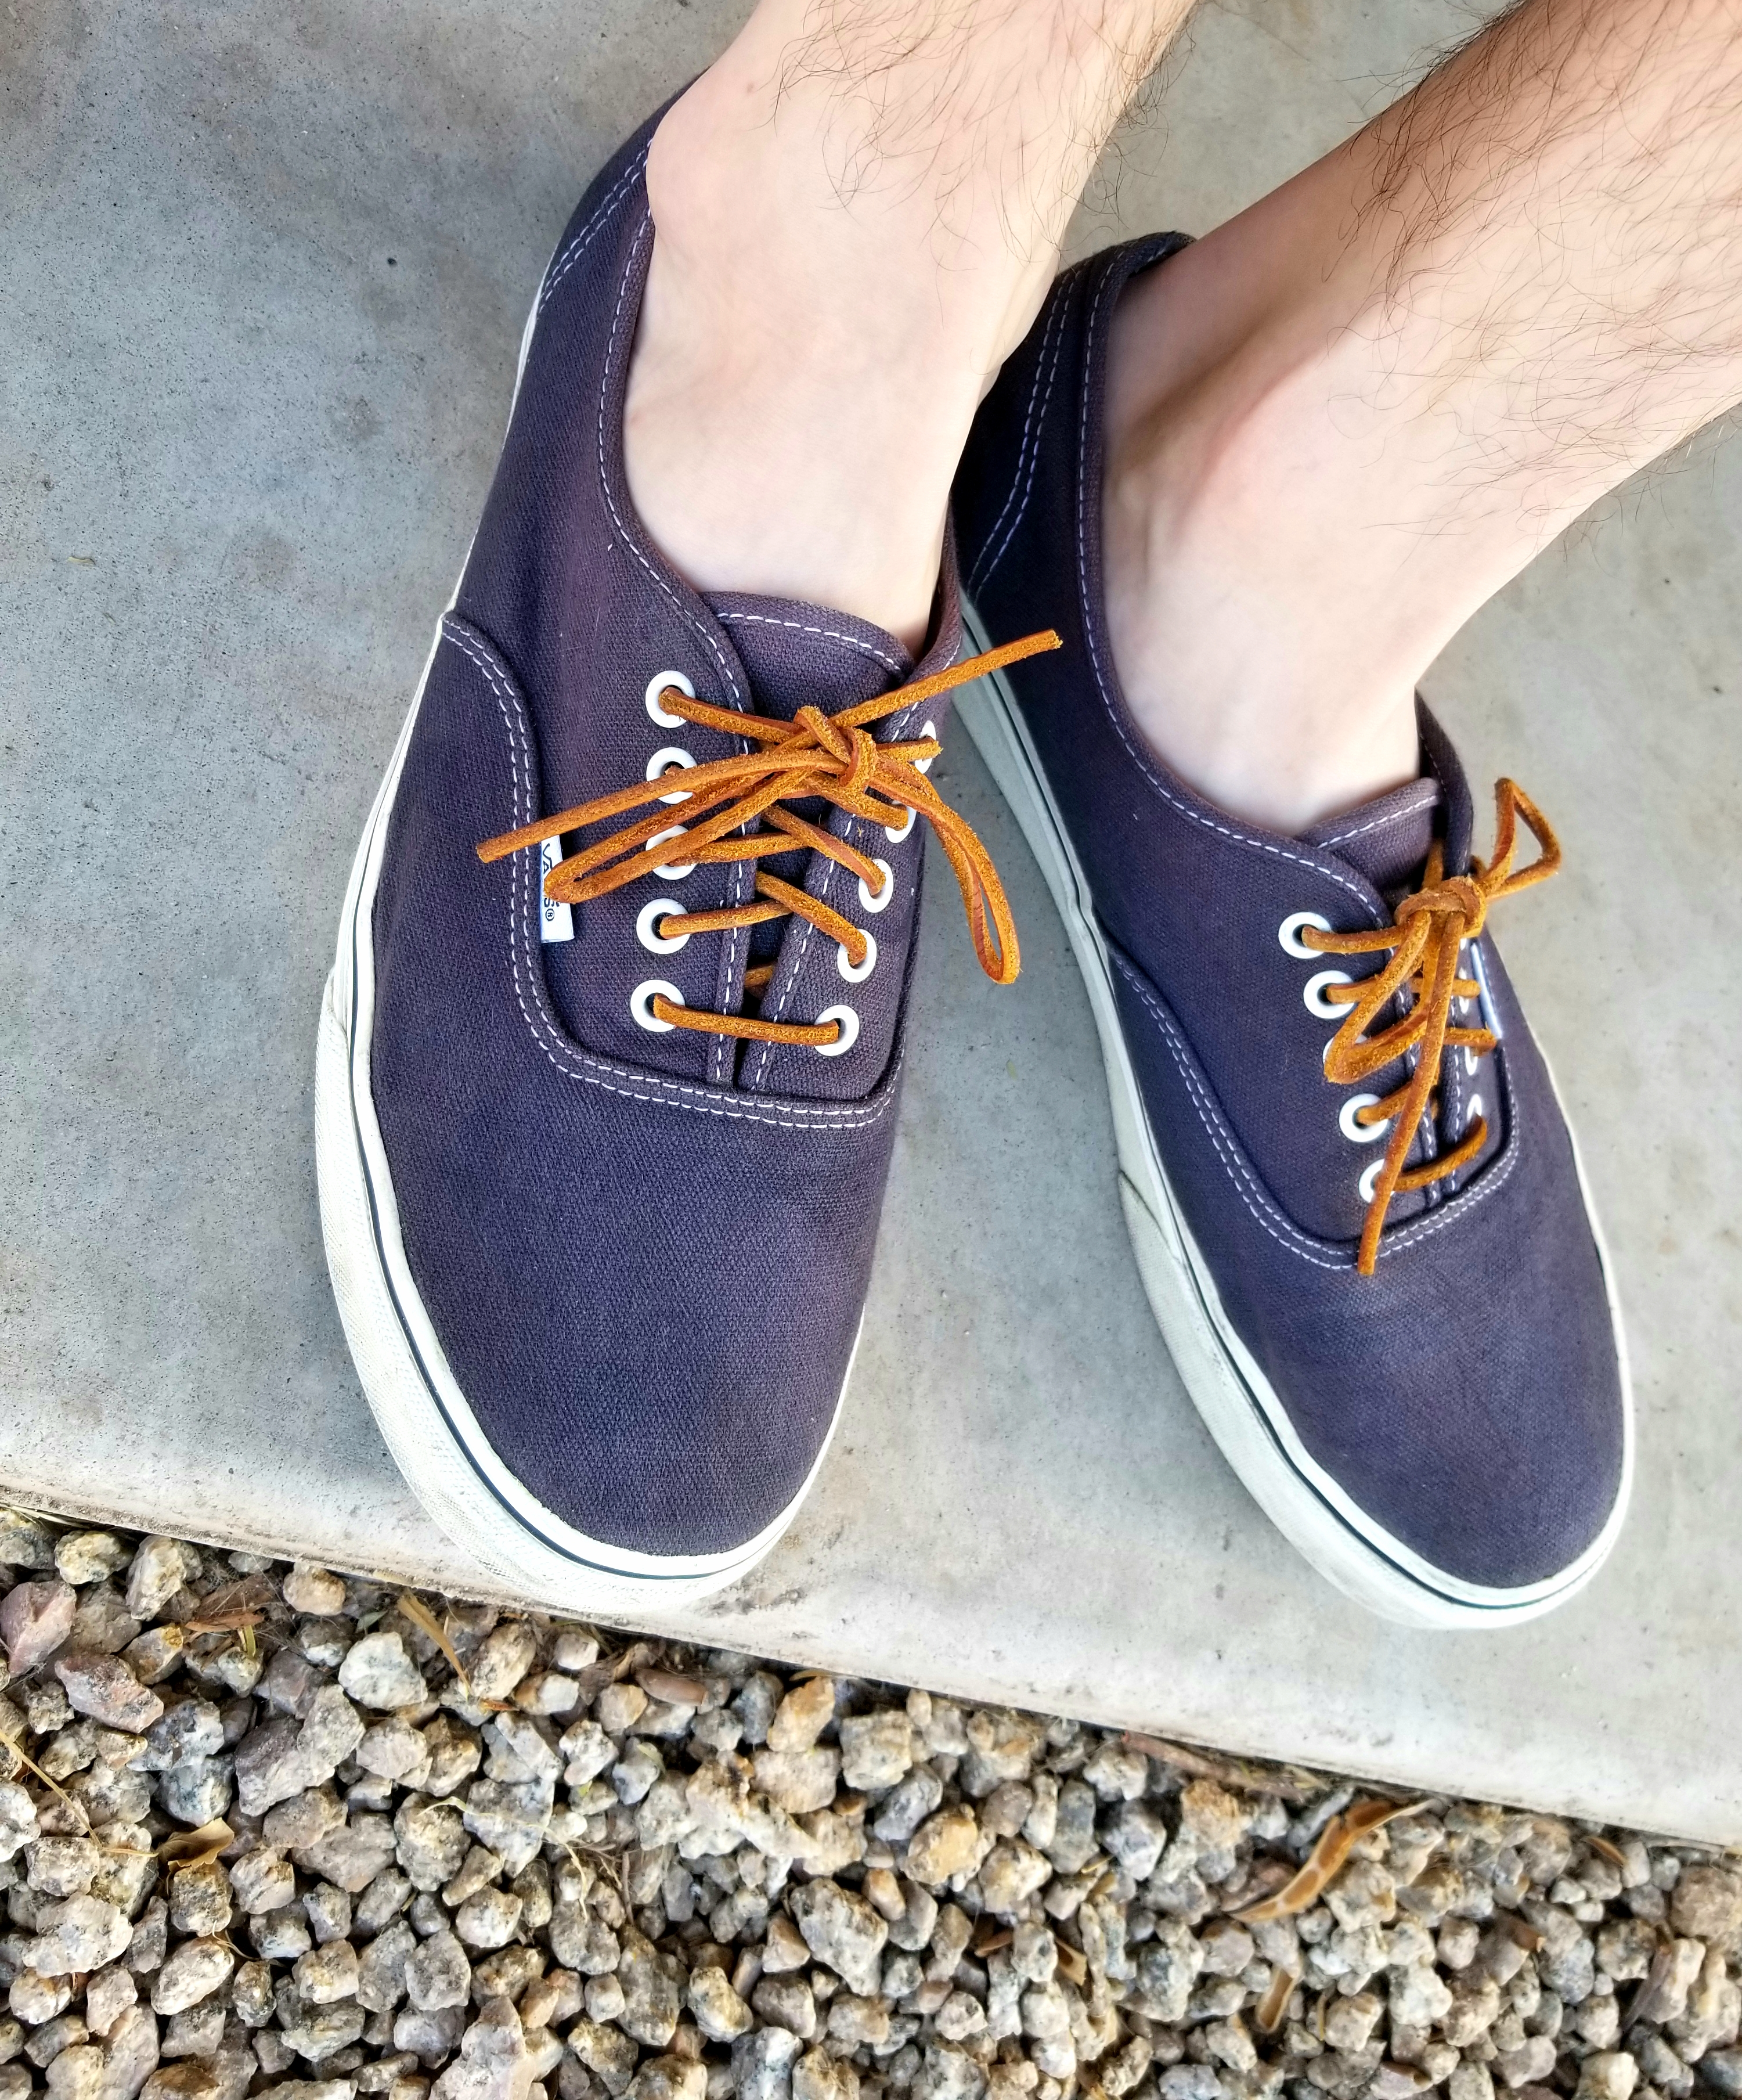 7019c59e16 J.Crew Indigo-Dyed Washed Canvas  Authentic  Size 11.5 - Low-Top ...